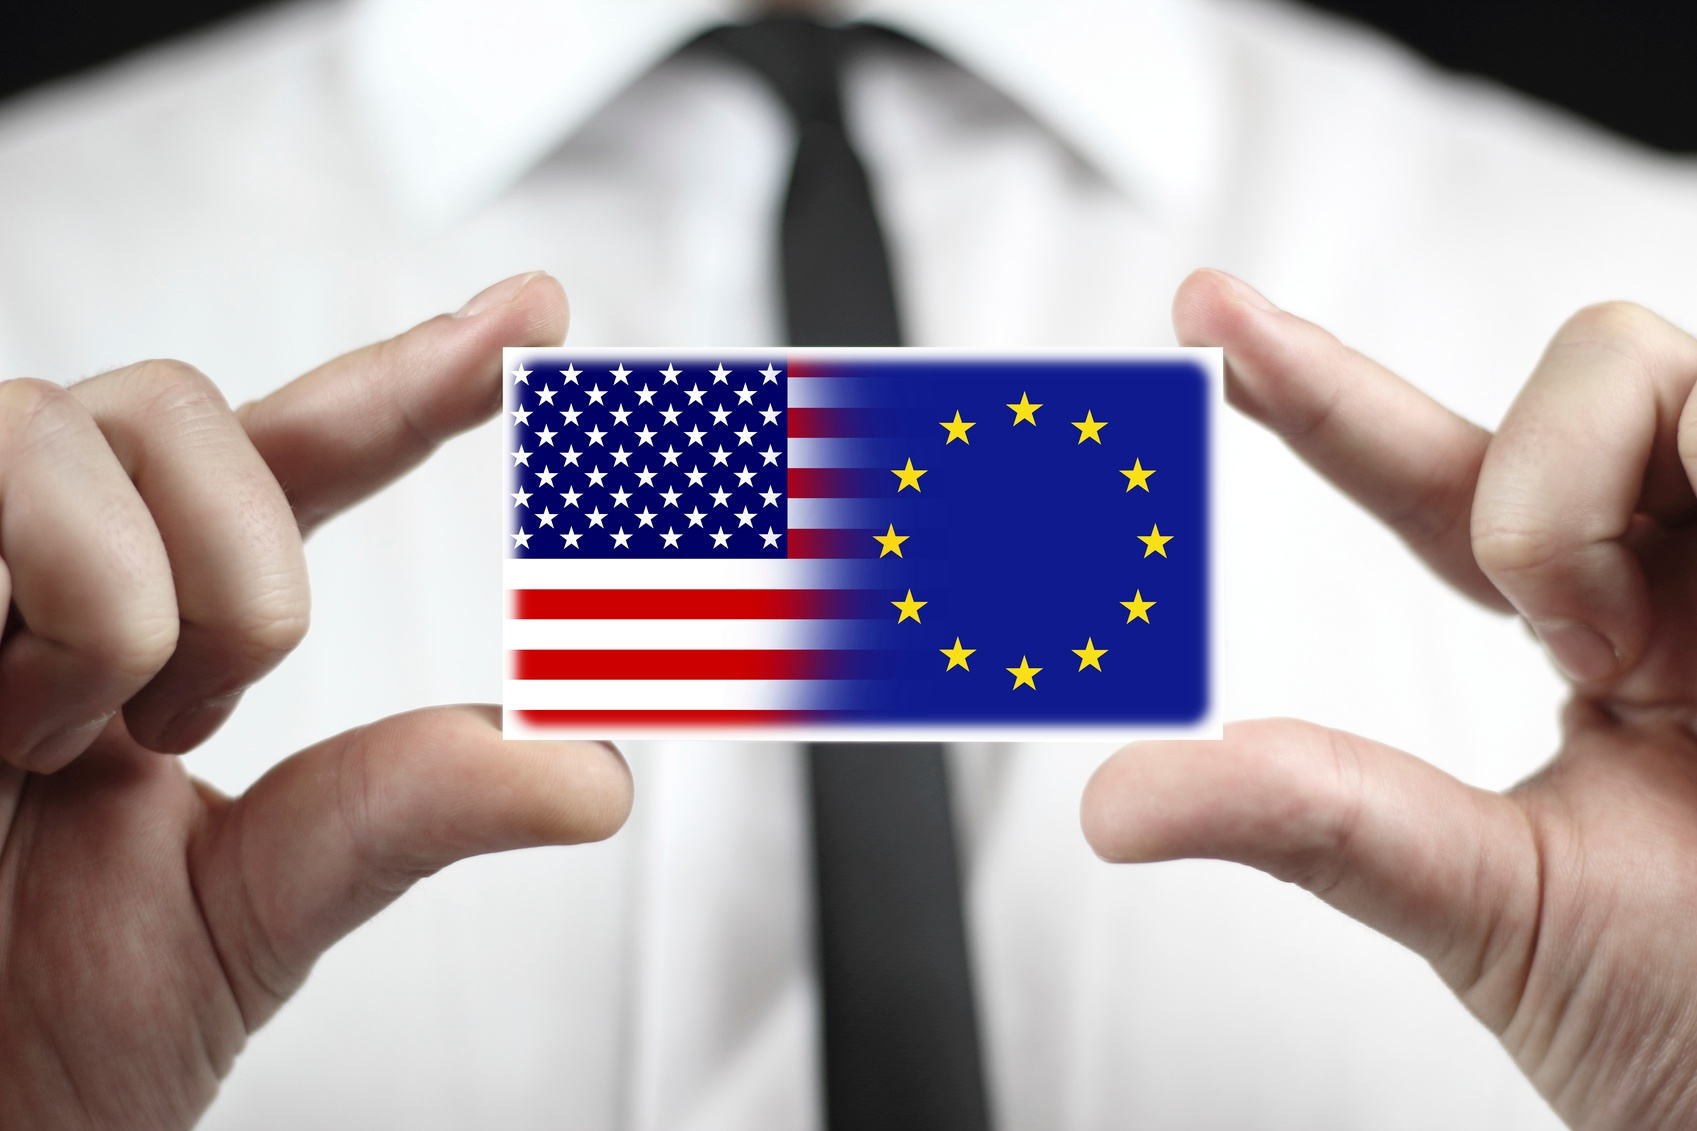 Research Shows U.S. Employee Benefits Lag Behind European Countries - Featured Image